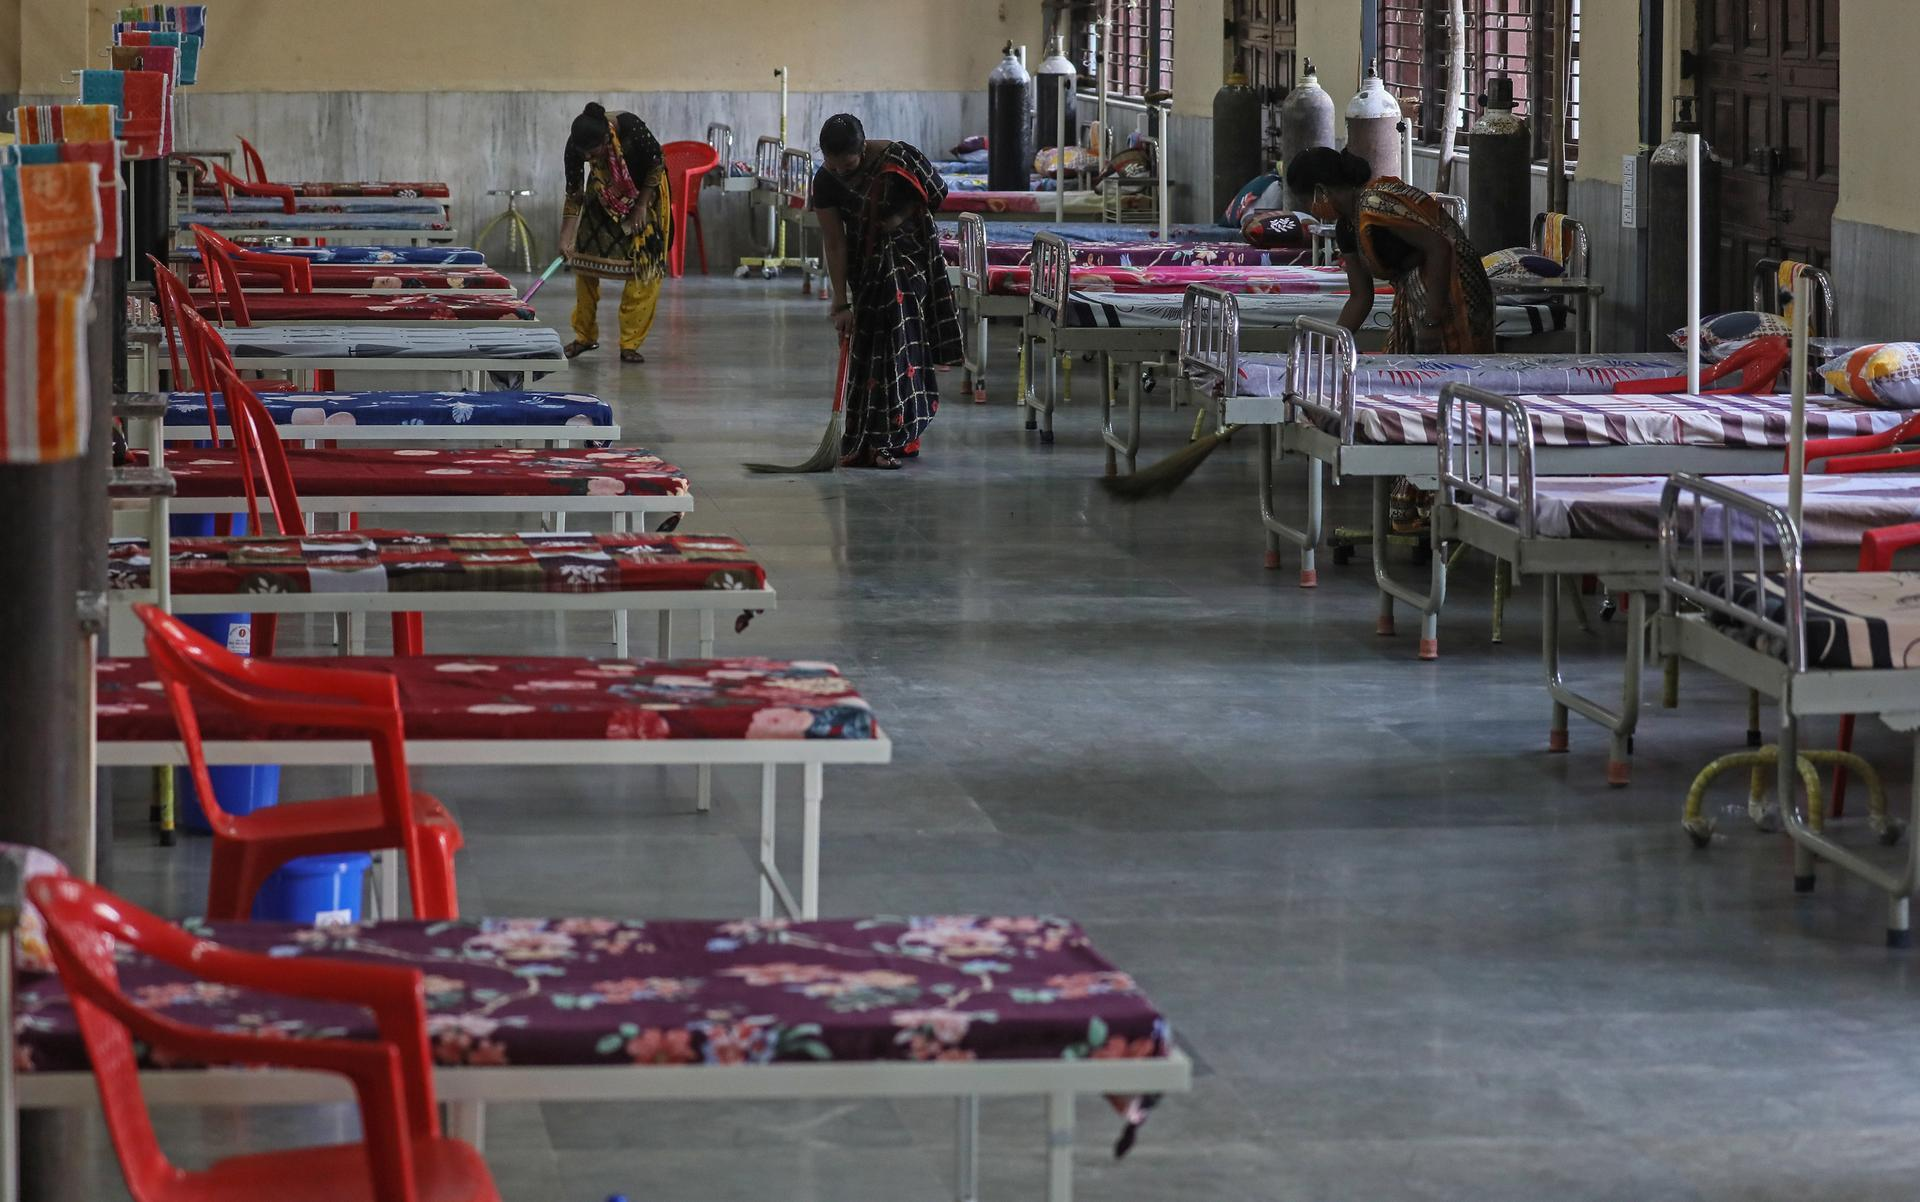 Workers clean the floor near the beds inside a newly opened Covid-19 centre in Mumbai. EPA